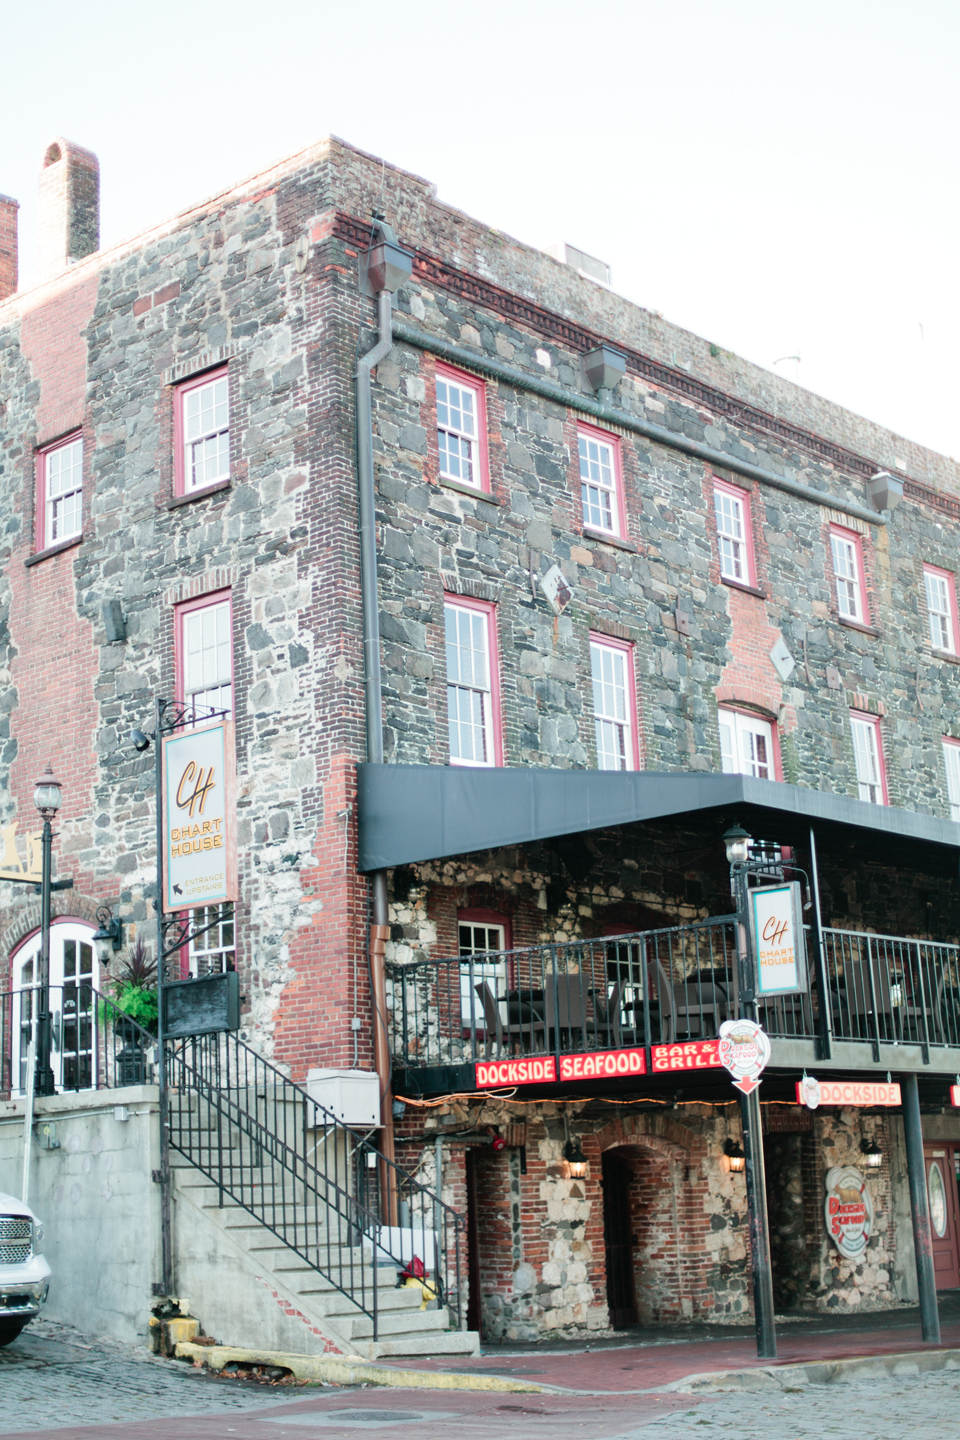 Image of buildings on East River Street in downtown historic Savannah, Georgia.  This is a four story stone building with steps.